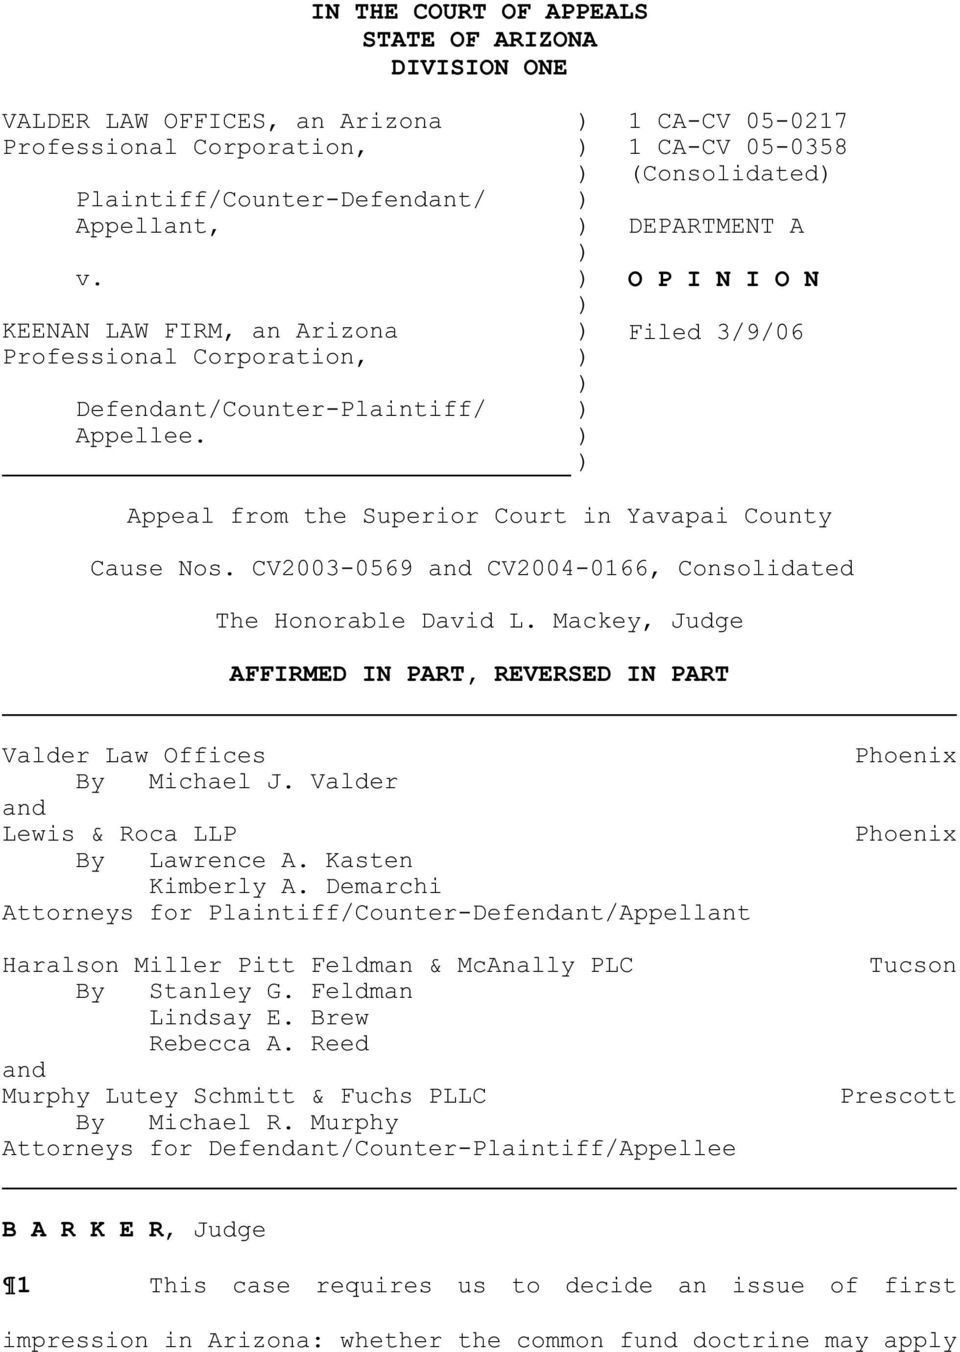 1 CA-CV 05-0217 1 CA-CV 05-0358 (Consolidated DEPARTMENT A O P I N I O N Filed 3/9/06 Appeal from the Superior Court in Yavapai County Cause Nos.